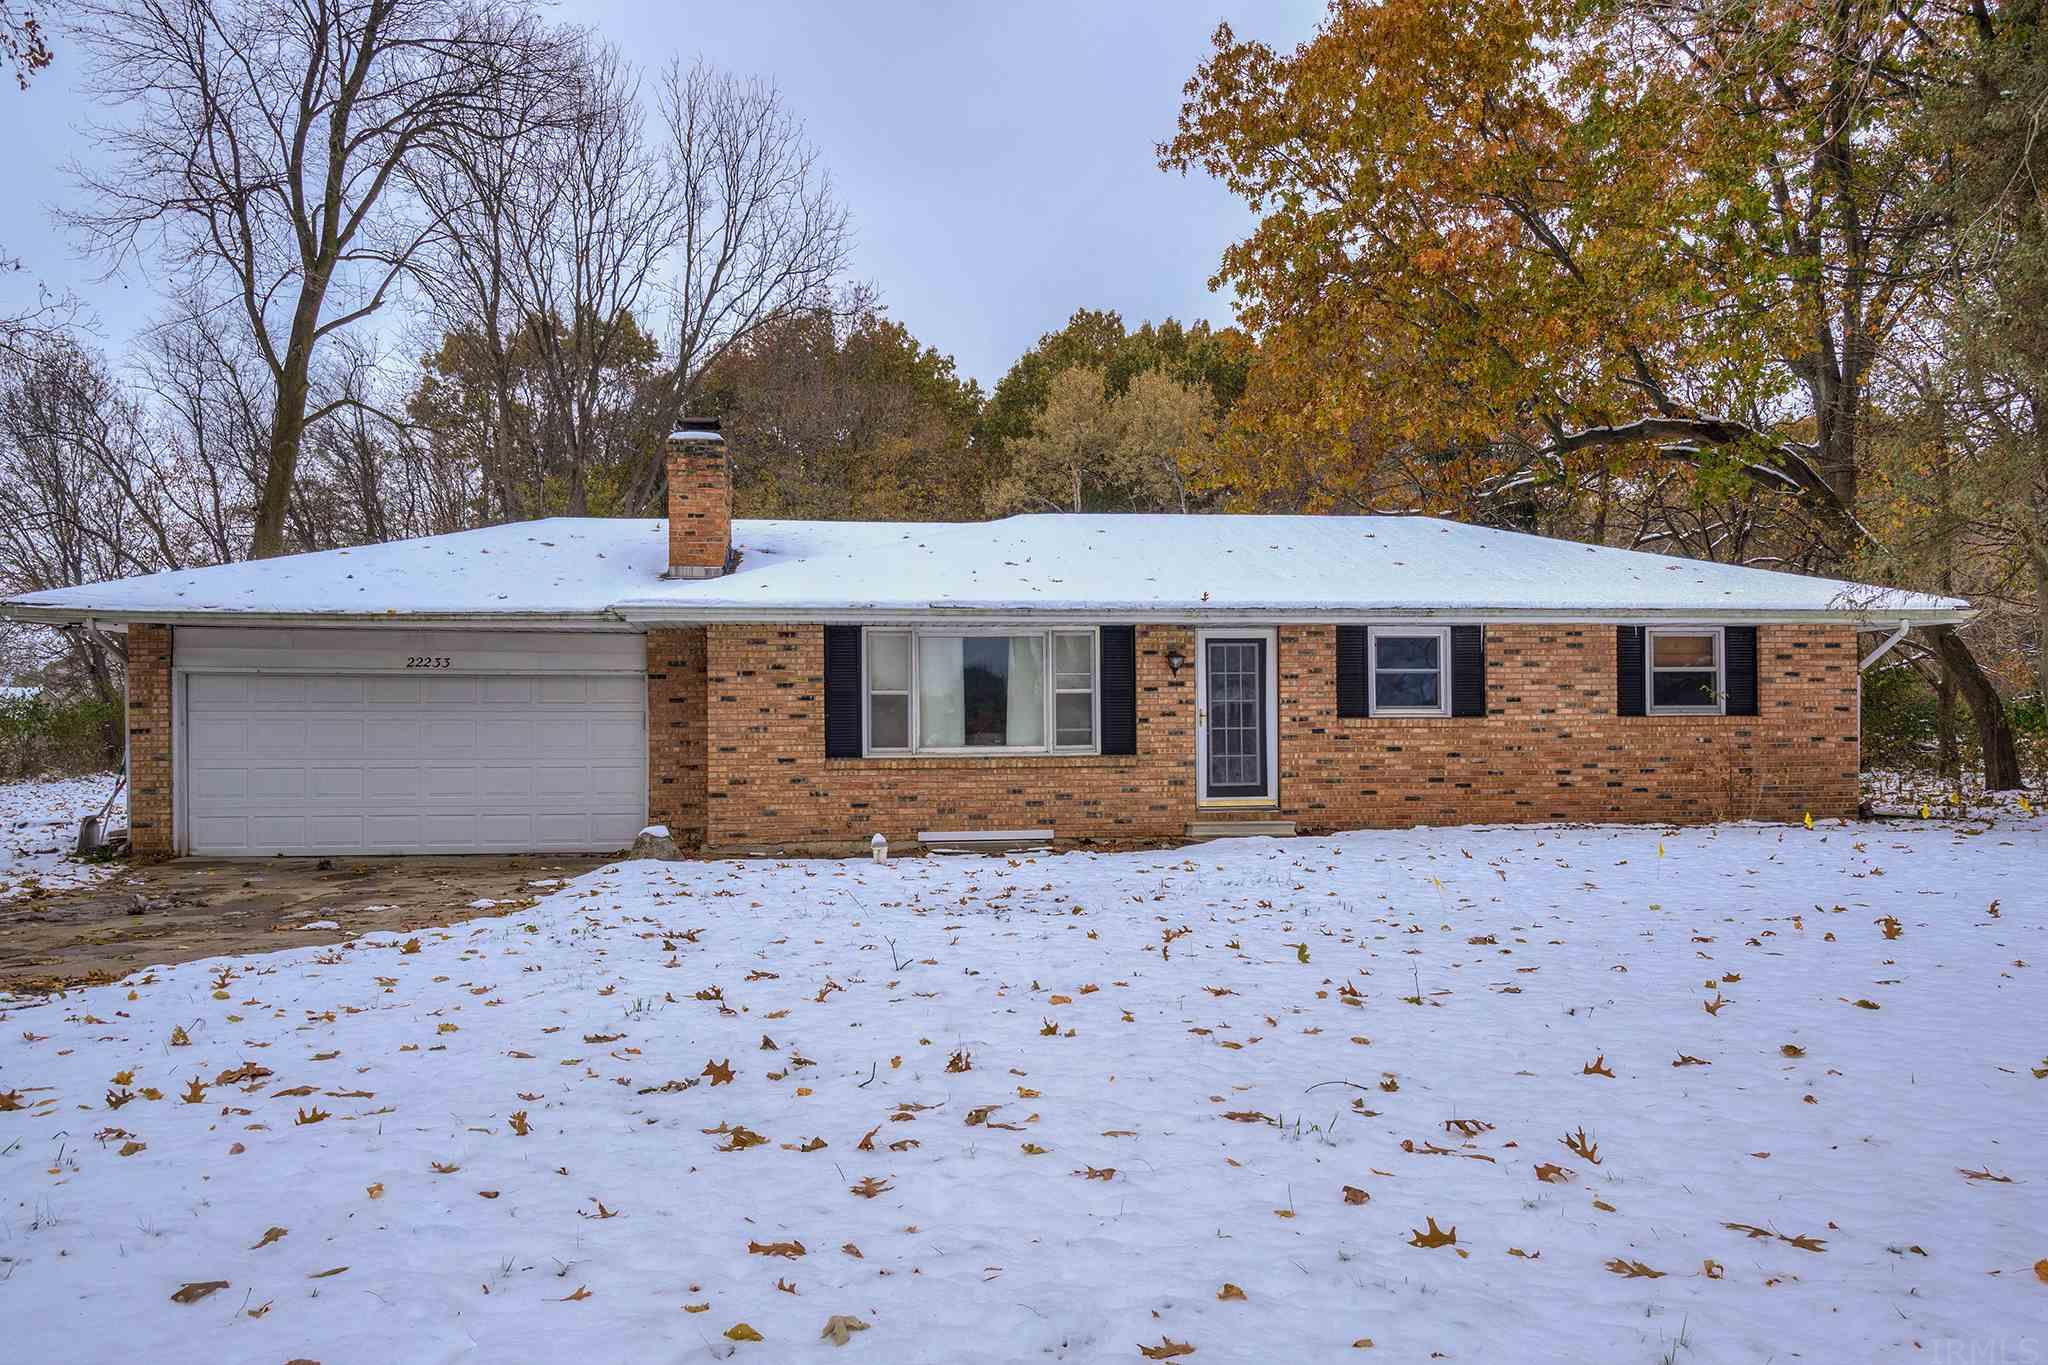 22233 Brick South Bend, IN 46628